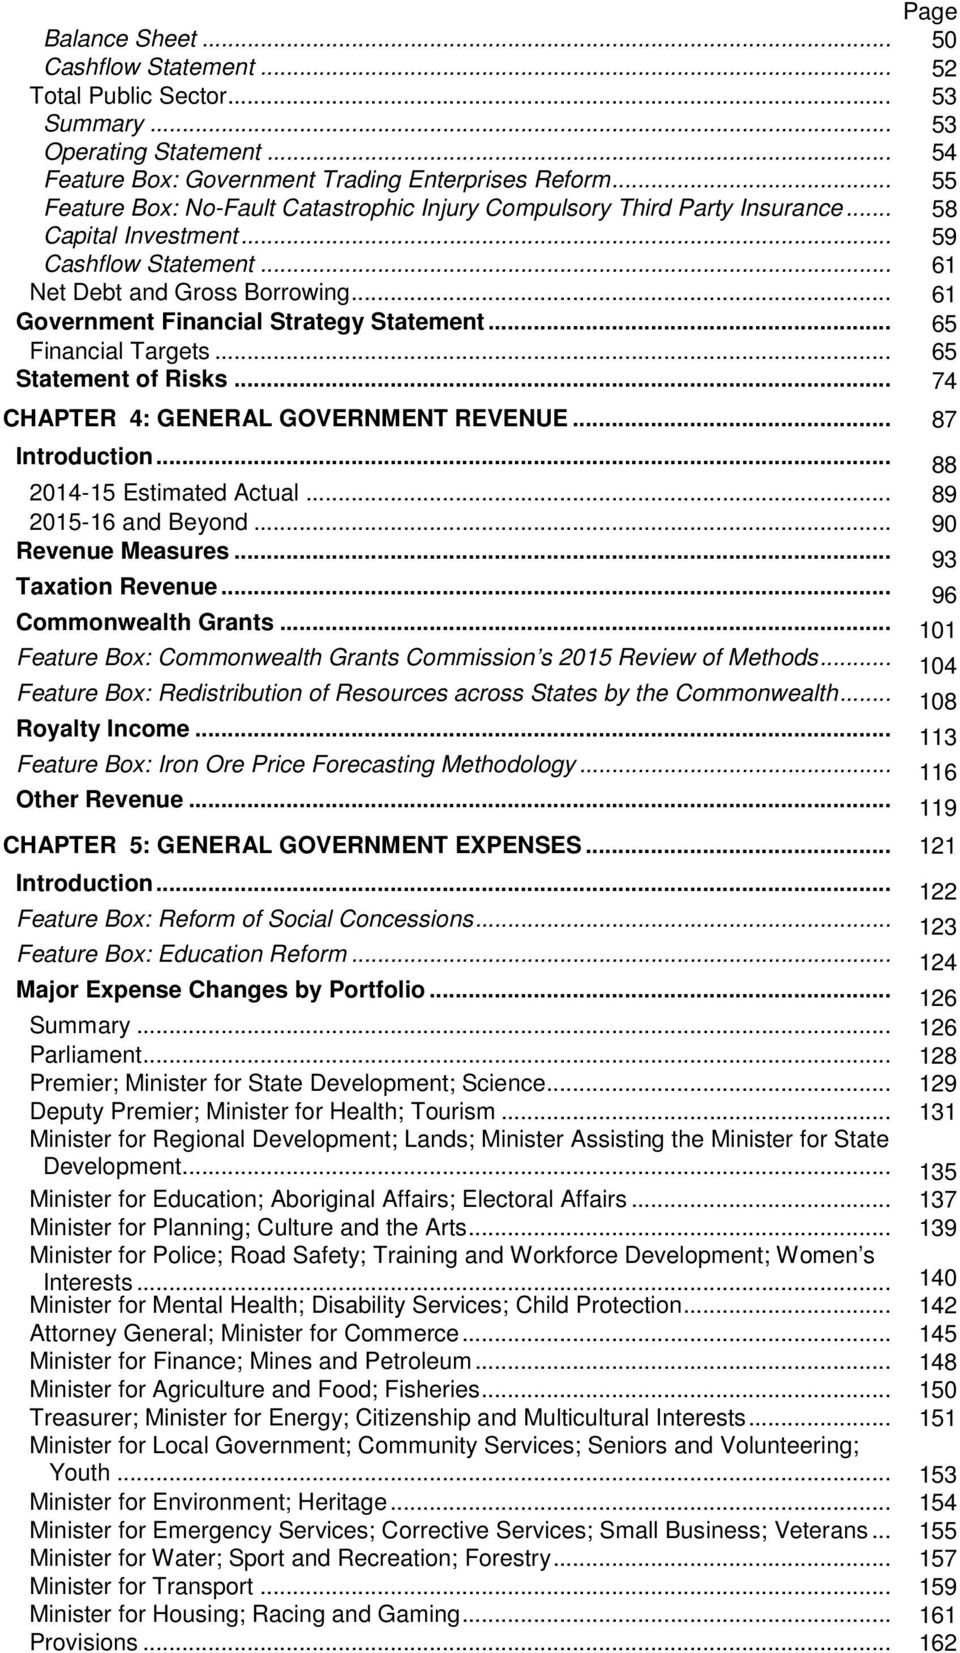 .. 61 Government Financial Strategy Statement... 65 Financial Targets... 65 Statement of Risks... 74 CHAPTER 4: GENERAL GOVERNMENT REVENUE... 87 Introduction... 88 2014-15 Estimated Actual.